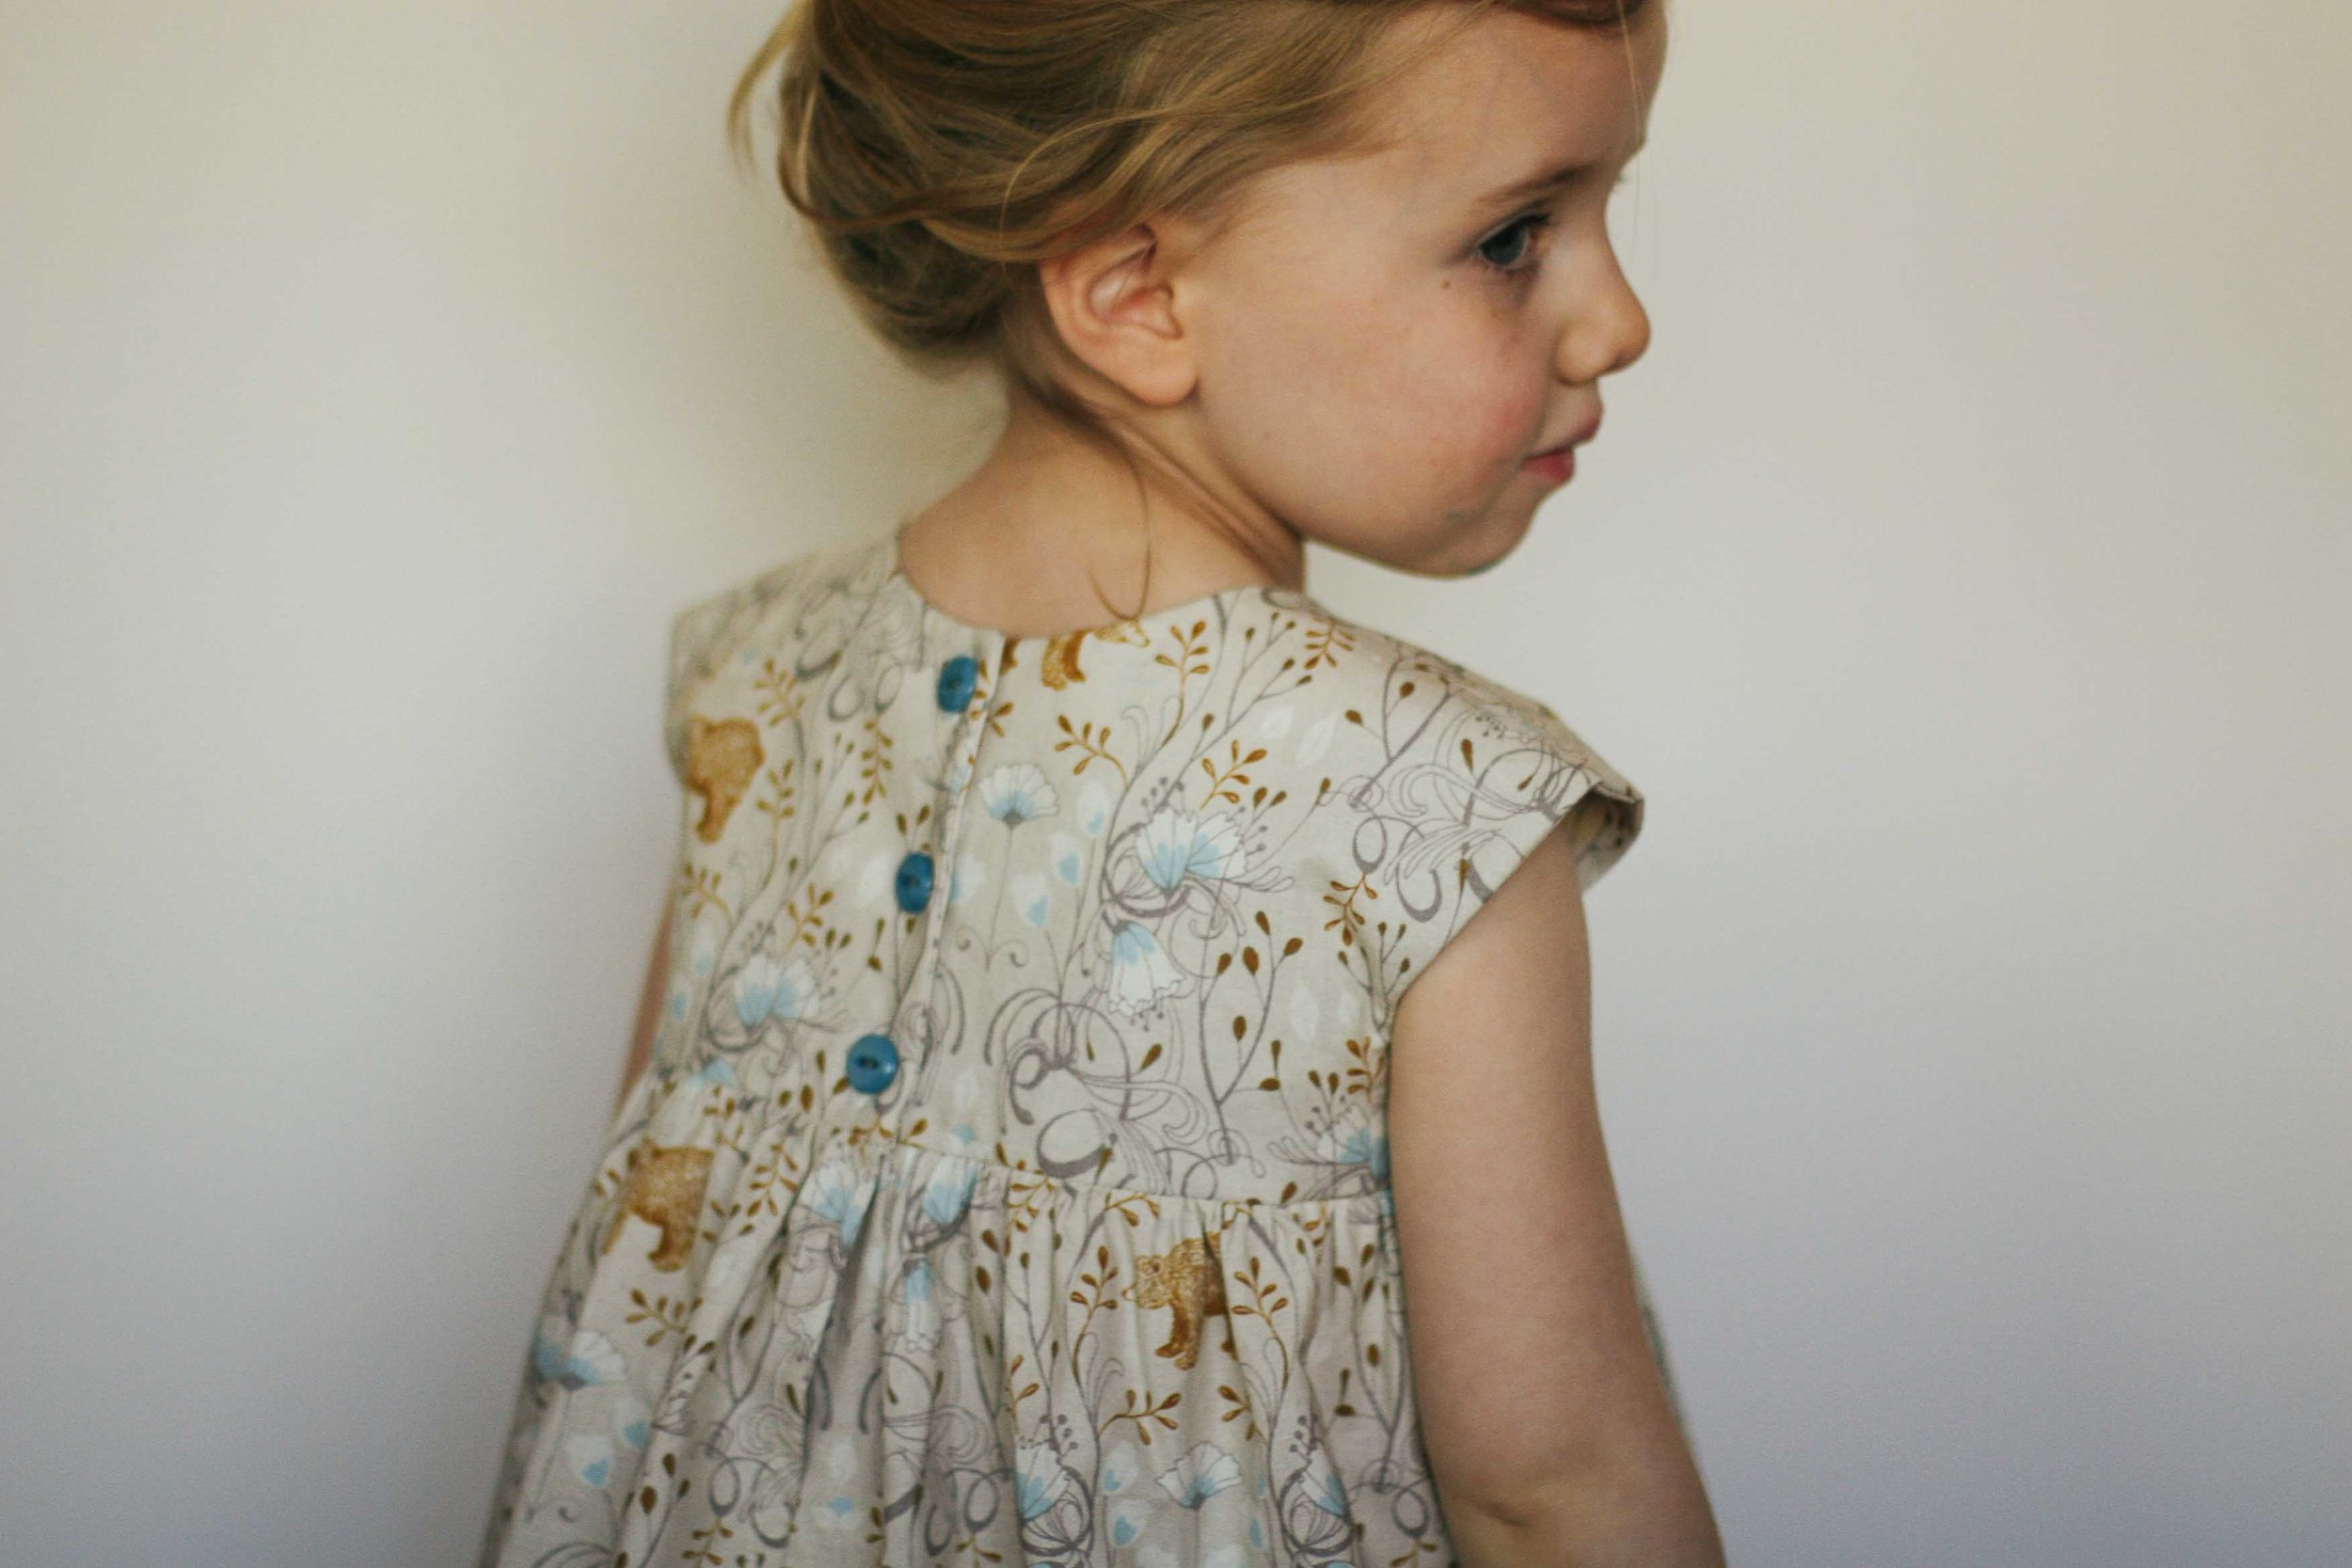 Fun - Love love love this pattern, fabric and small person